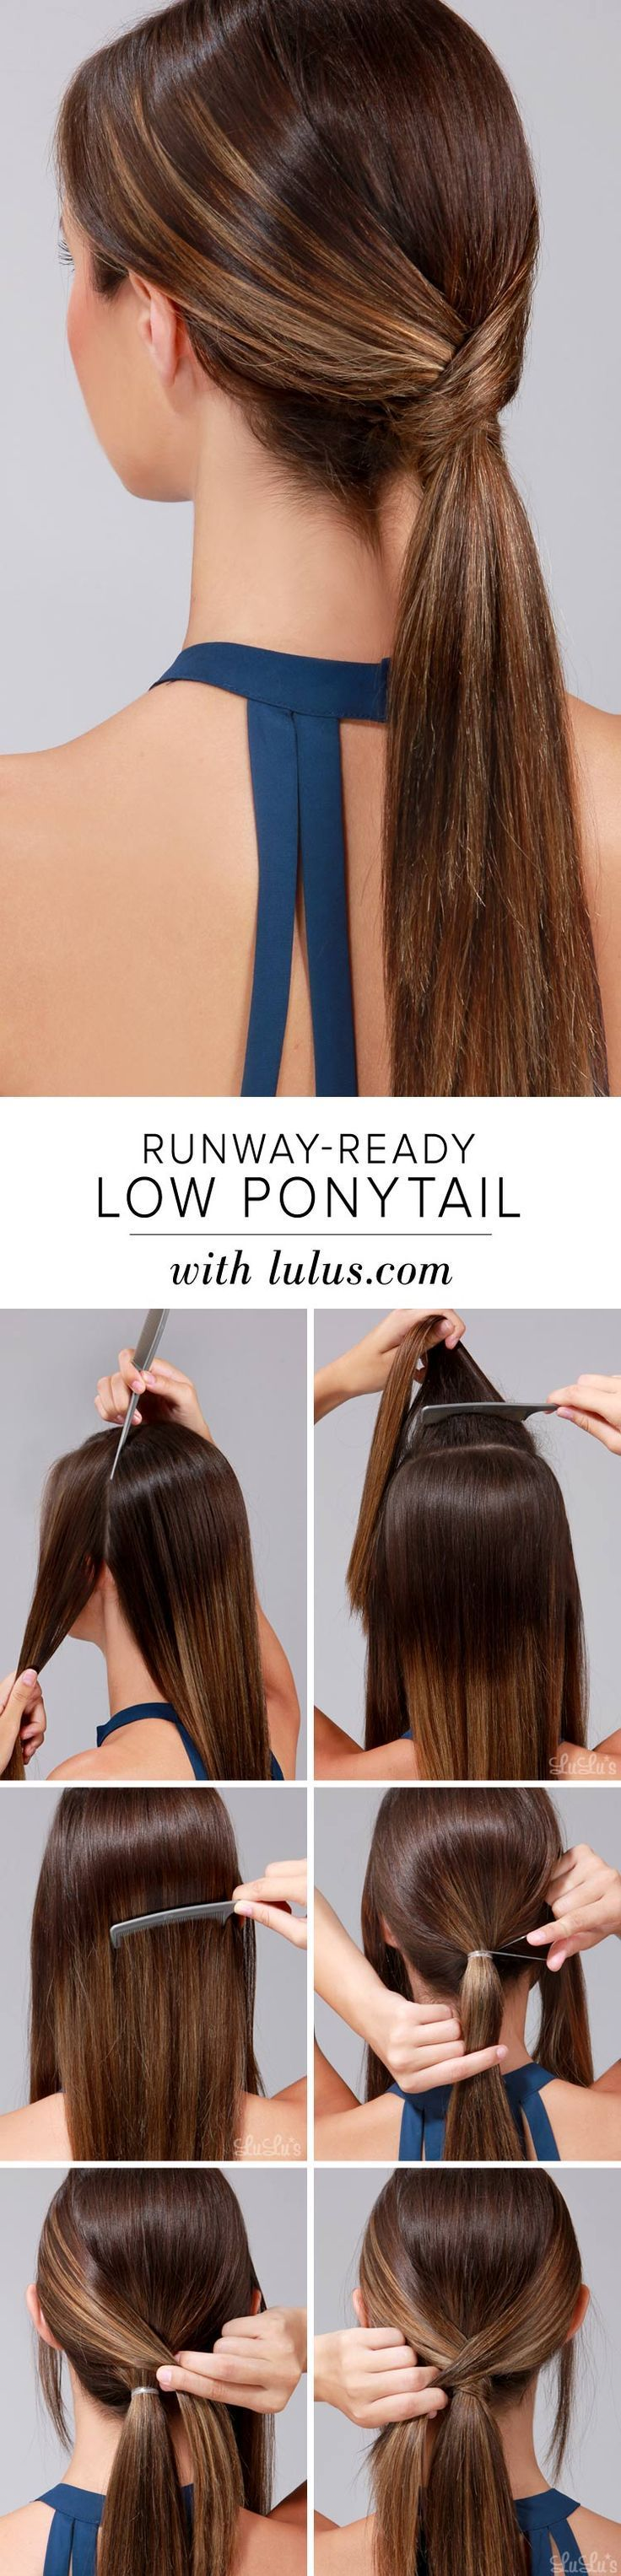 cool From Classy to Cute: 25+ Easy Hairstyles for Long Hair #diyhairstylesforschool